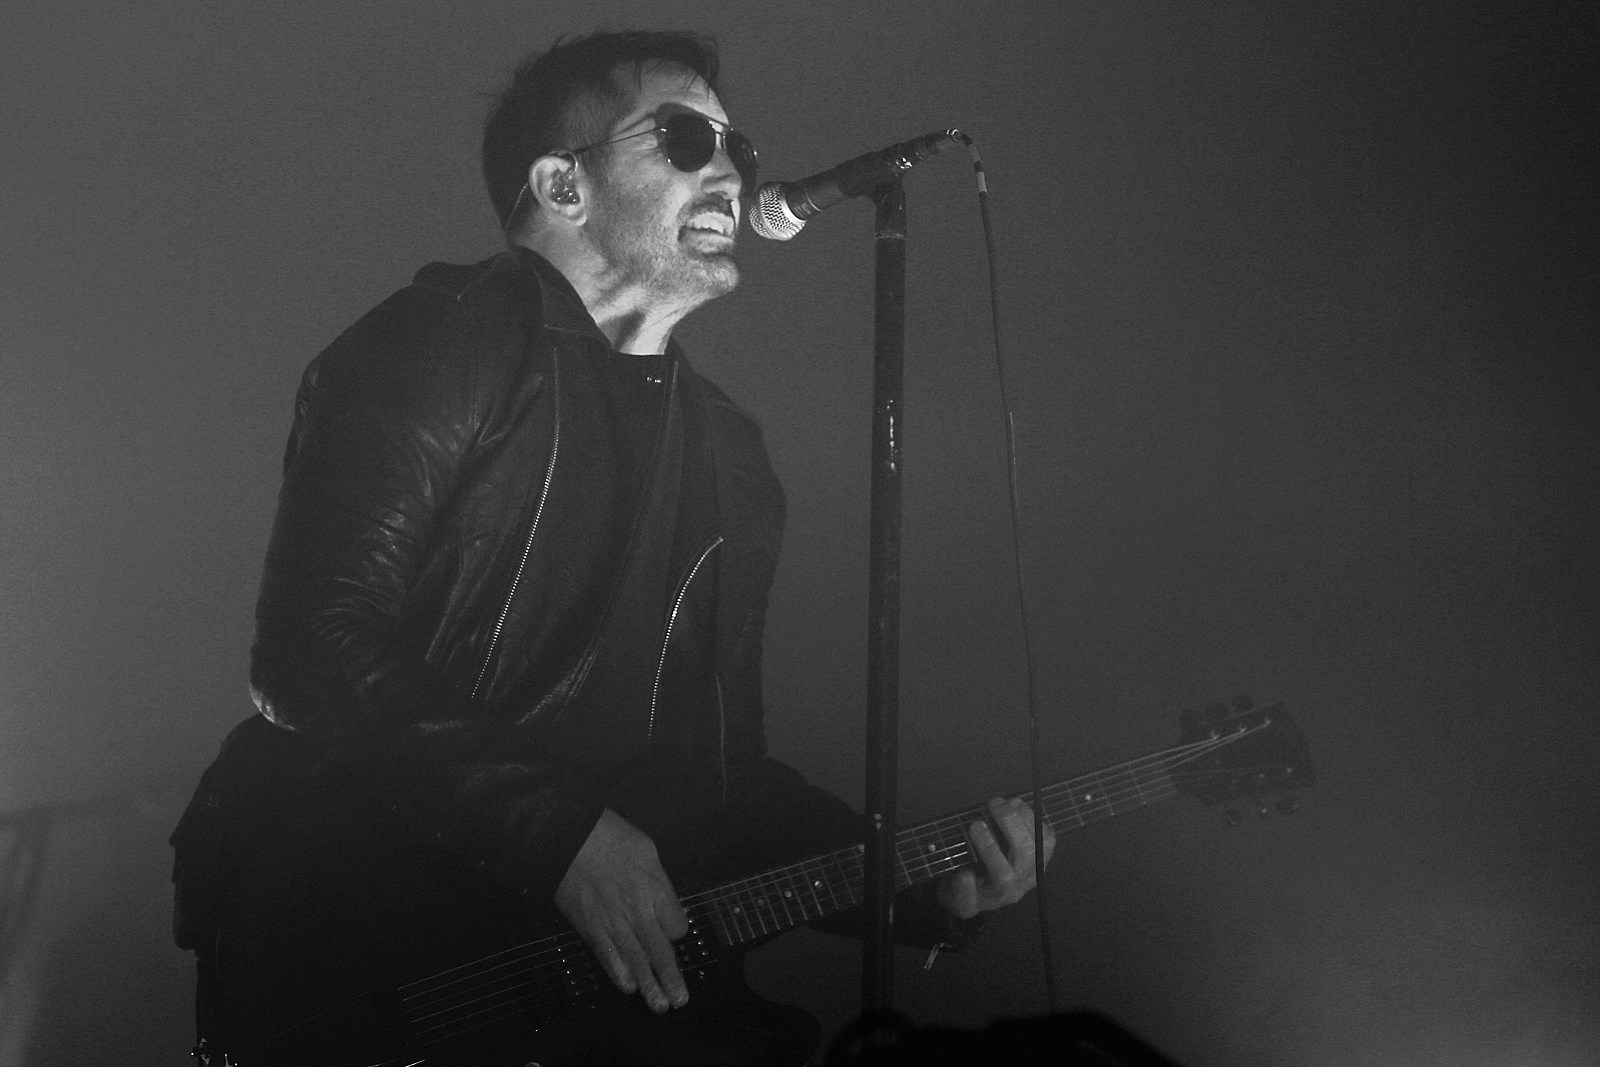 5 Reasons Nine Inch Nails Should Be in the Rock and Roll Hall of Fame